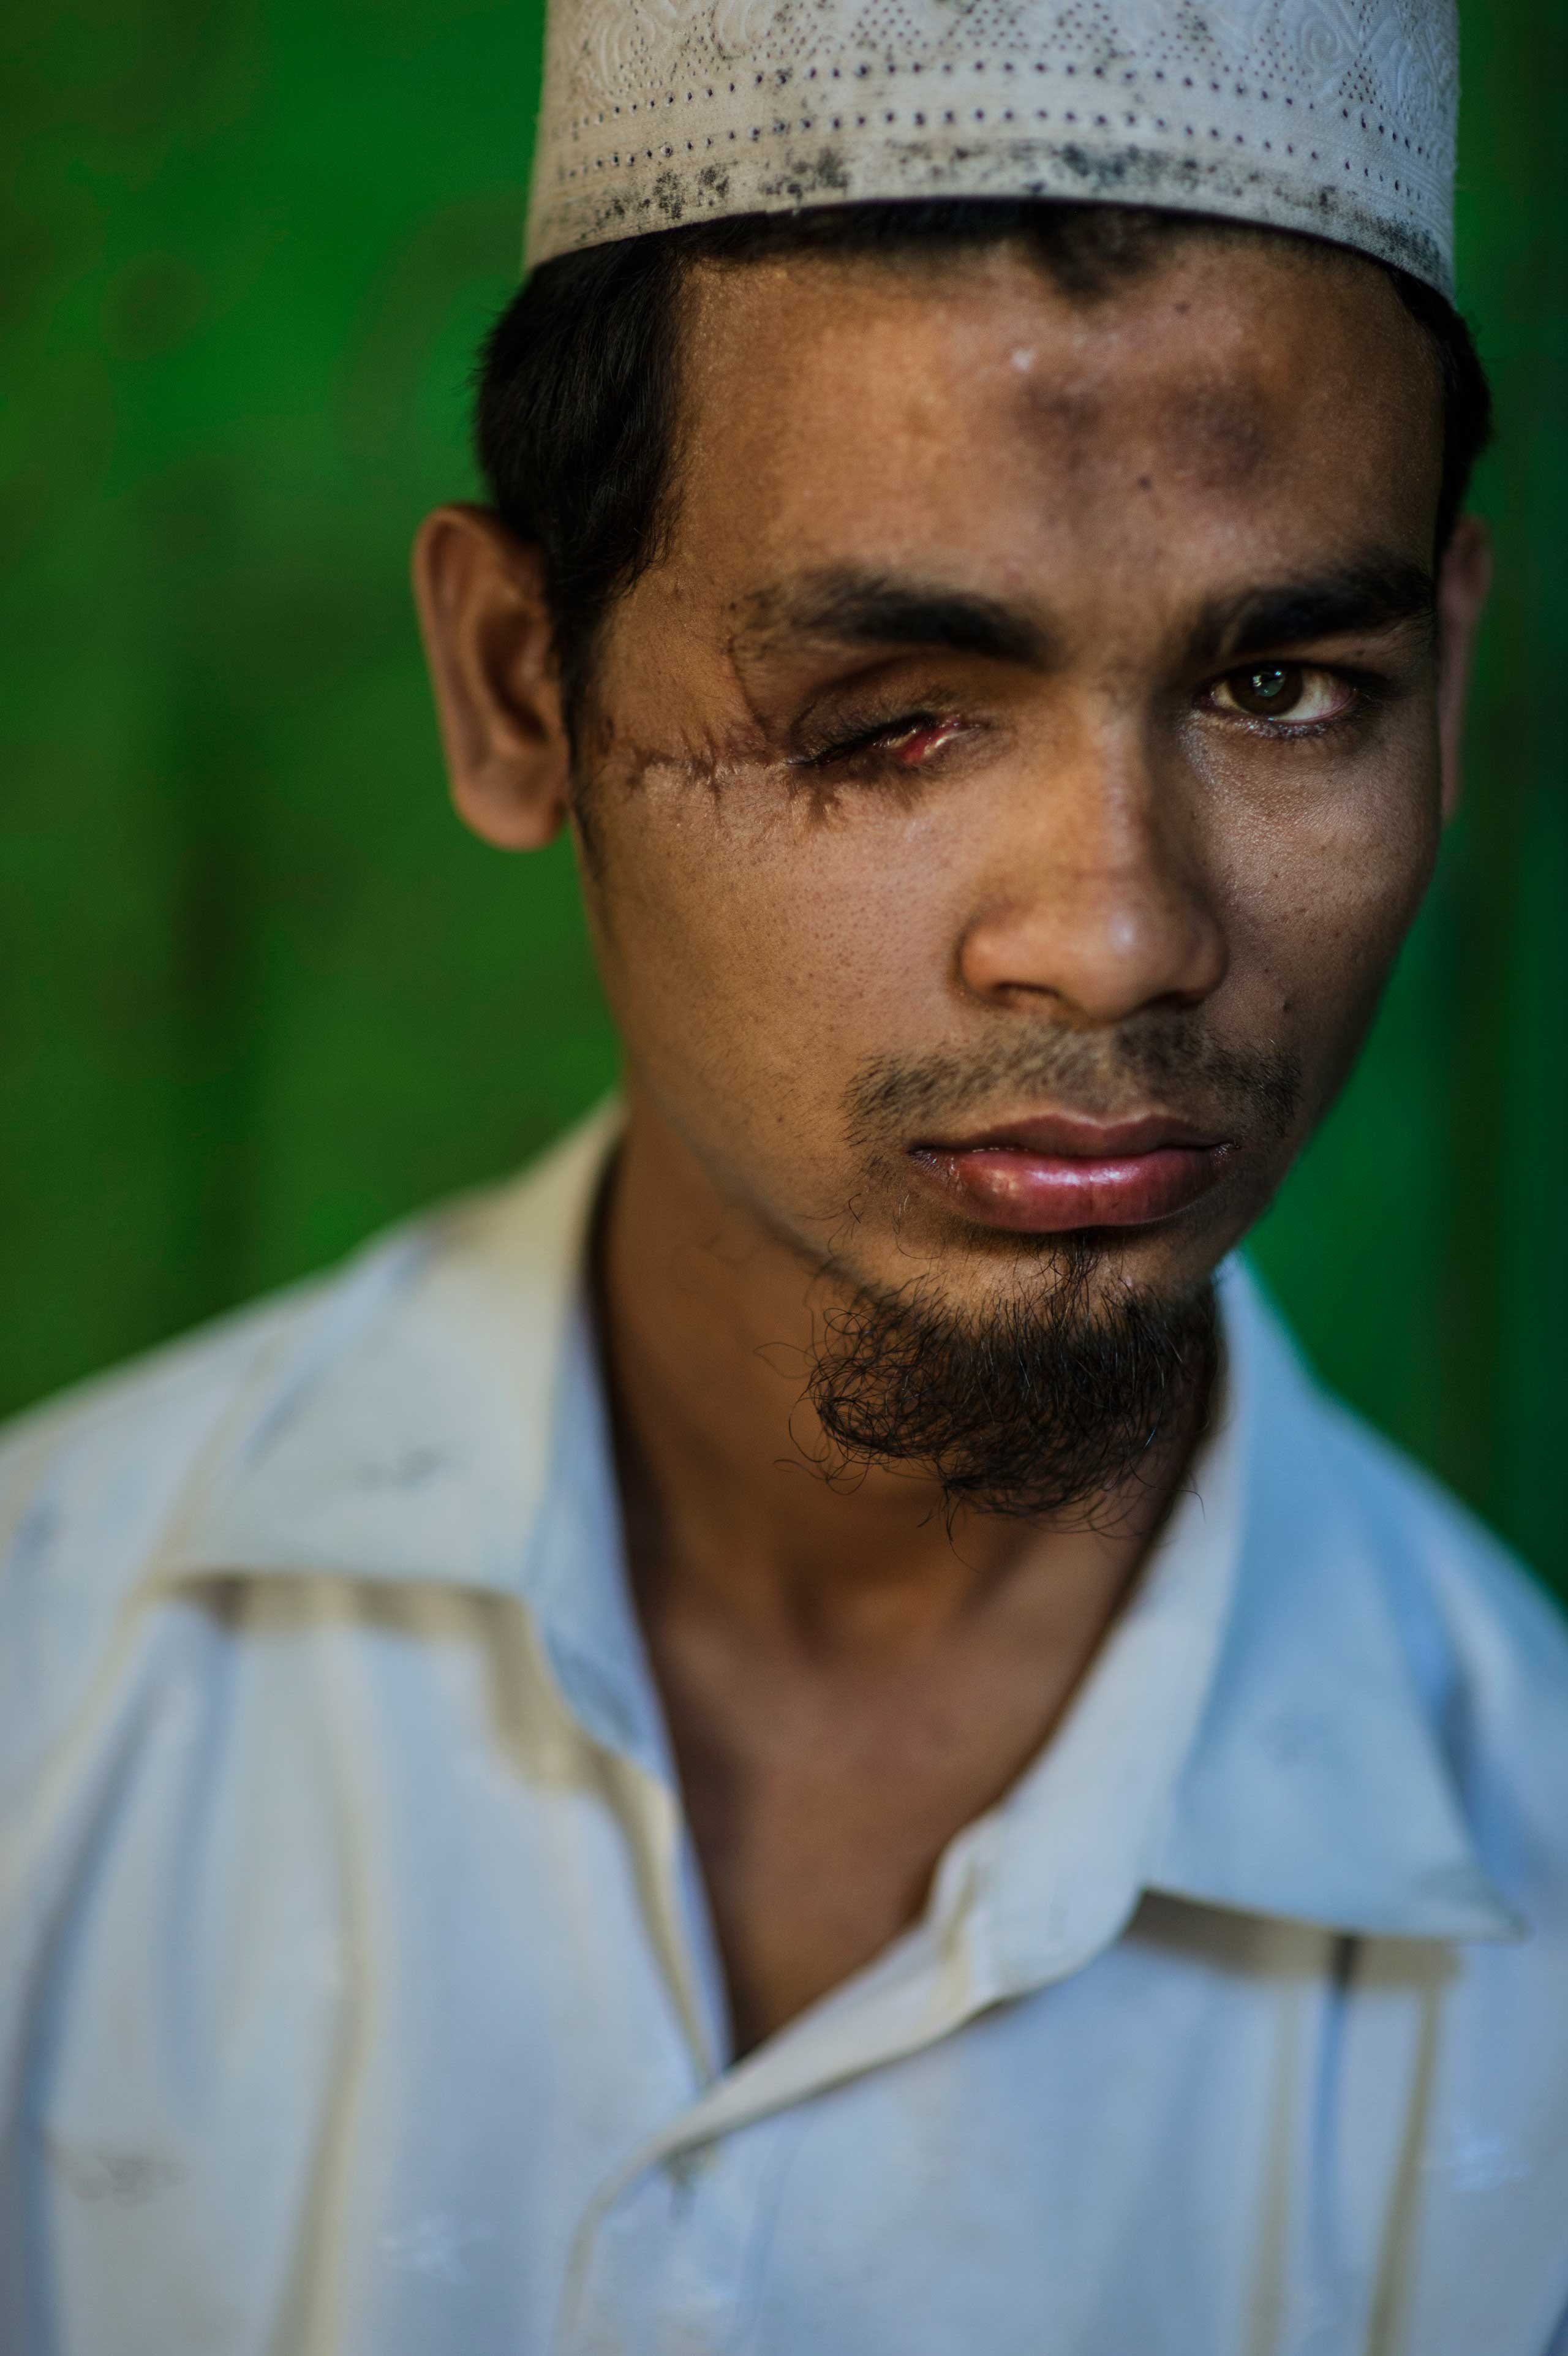 """Kyaw Kyaw, 22, from Kyaukpyu: he is from a village about 60-70 miles away from the Thay Chaung IDP camp. During the second round of violence in Oct. 2012, Kyaw Kyaw left the mosque at about 7:30pm on Oct. 24 and the Rakhine came to their village, and the villagers tried to stop them.    They destroyed the mosque. In front of him, one of the villagers was hit by police bullets, and he pulled away from the area. When the village was hit, he pulled away from the area, and at the same time, he was also hit in the eye. Two villagers brought him to the back, and there were 4-5 people in total who had been hit by police fire.   In that moment, the villagers made an agreement with the military to transfer the injured to the hospital…. A bullet was still in his eye when he arrived at the Yangon hospital, and they did surgery on him. He was there about 45 days, and sent back to Sittwe.   """"I am not angry with the situation: I am always trying to be comfortable with people according to their religious decision. [This happened] because they wanted to cause problems for islam in general. Right now, we are having a lot of difficulties,"""" he says.   """"My father can't work; we can't get money, and there are so many problems. We are suffering from many things right now. I used to have many friends—females, males—now I am the only one left, because anyone who has any money, left. Now I don't have any friends. Yes, I feel very bad I lost my eye.  I feel extremely sad. There are times when people talk down to me, but I am a man, and I am capable. My mother is getting old now, and I have to think about how to find a livelihood for her myself. If you want to think about how difficult it is for me, just imagine life without sight. Just close your eyes, and imagine. Of course I am frightened. I want to live in peace."""""""